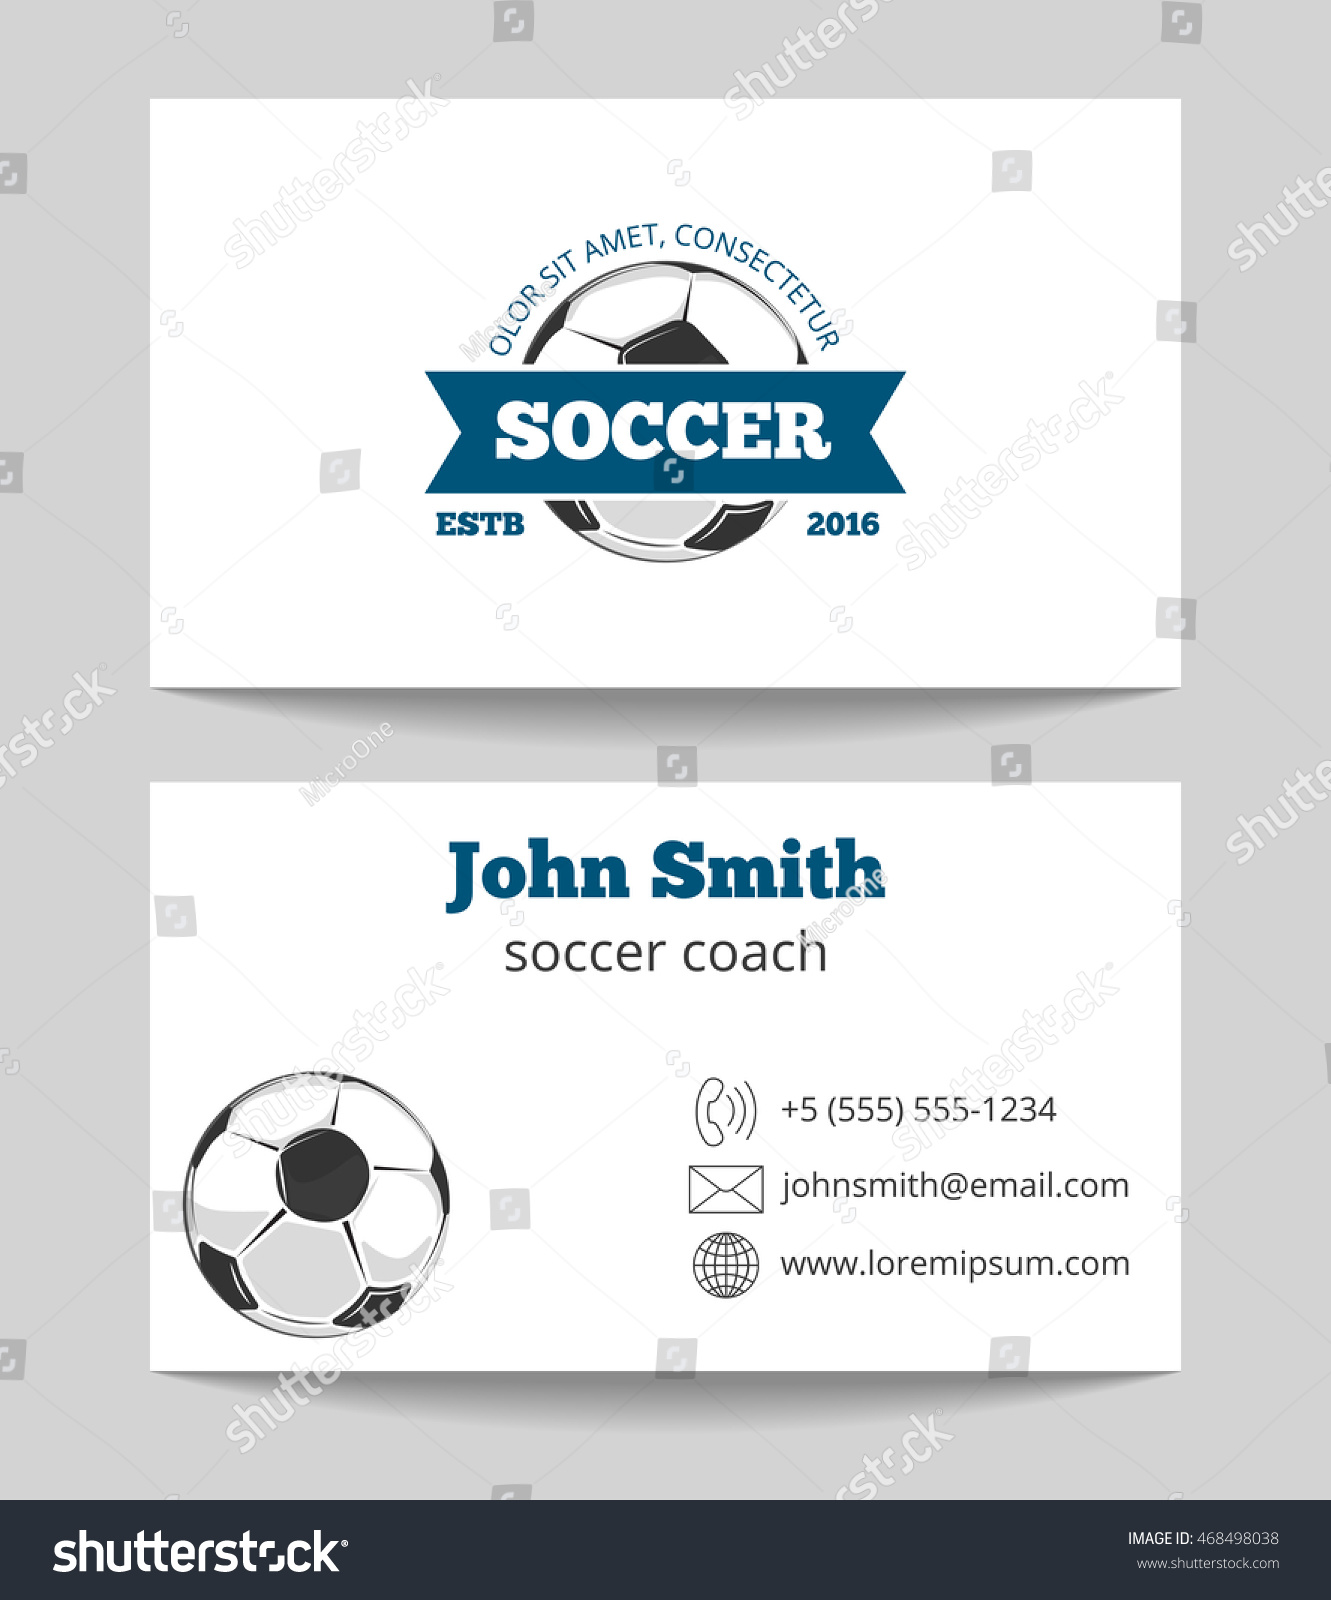 Soccer Business Card Both Sides Template Stock Vector 468498038 ...